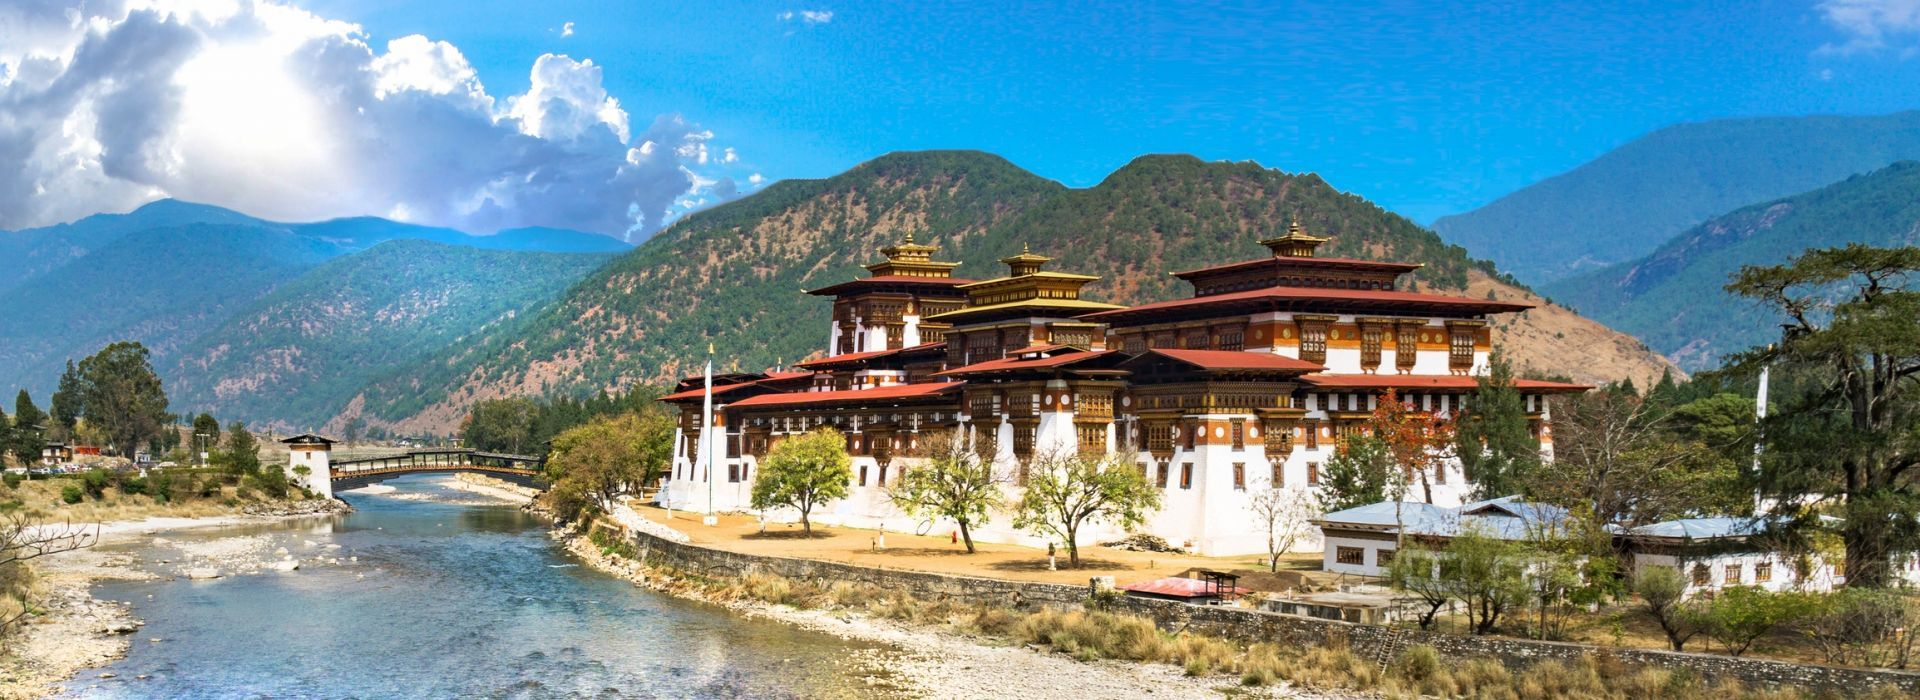 Cultural, religious and historic sites Tours in Tiger's Nest Monastery